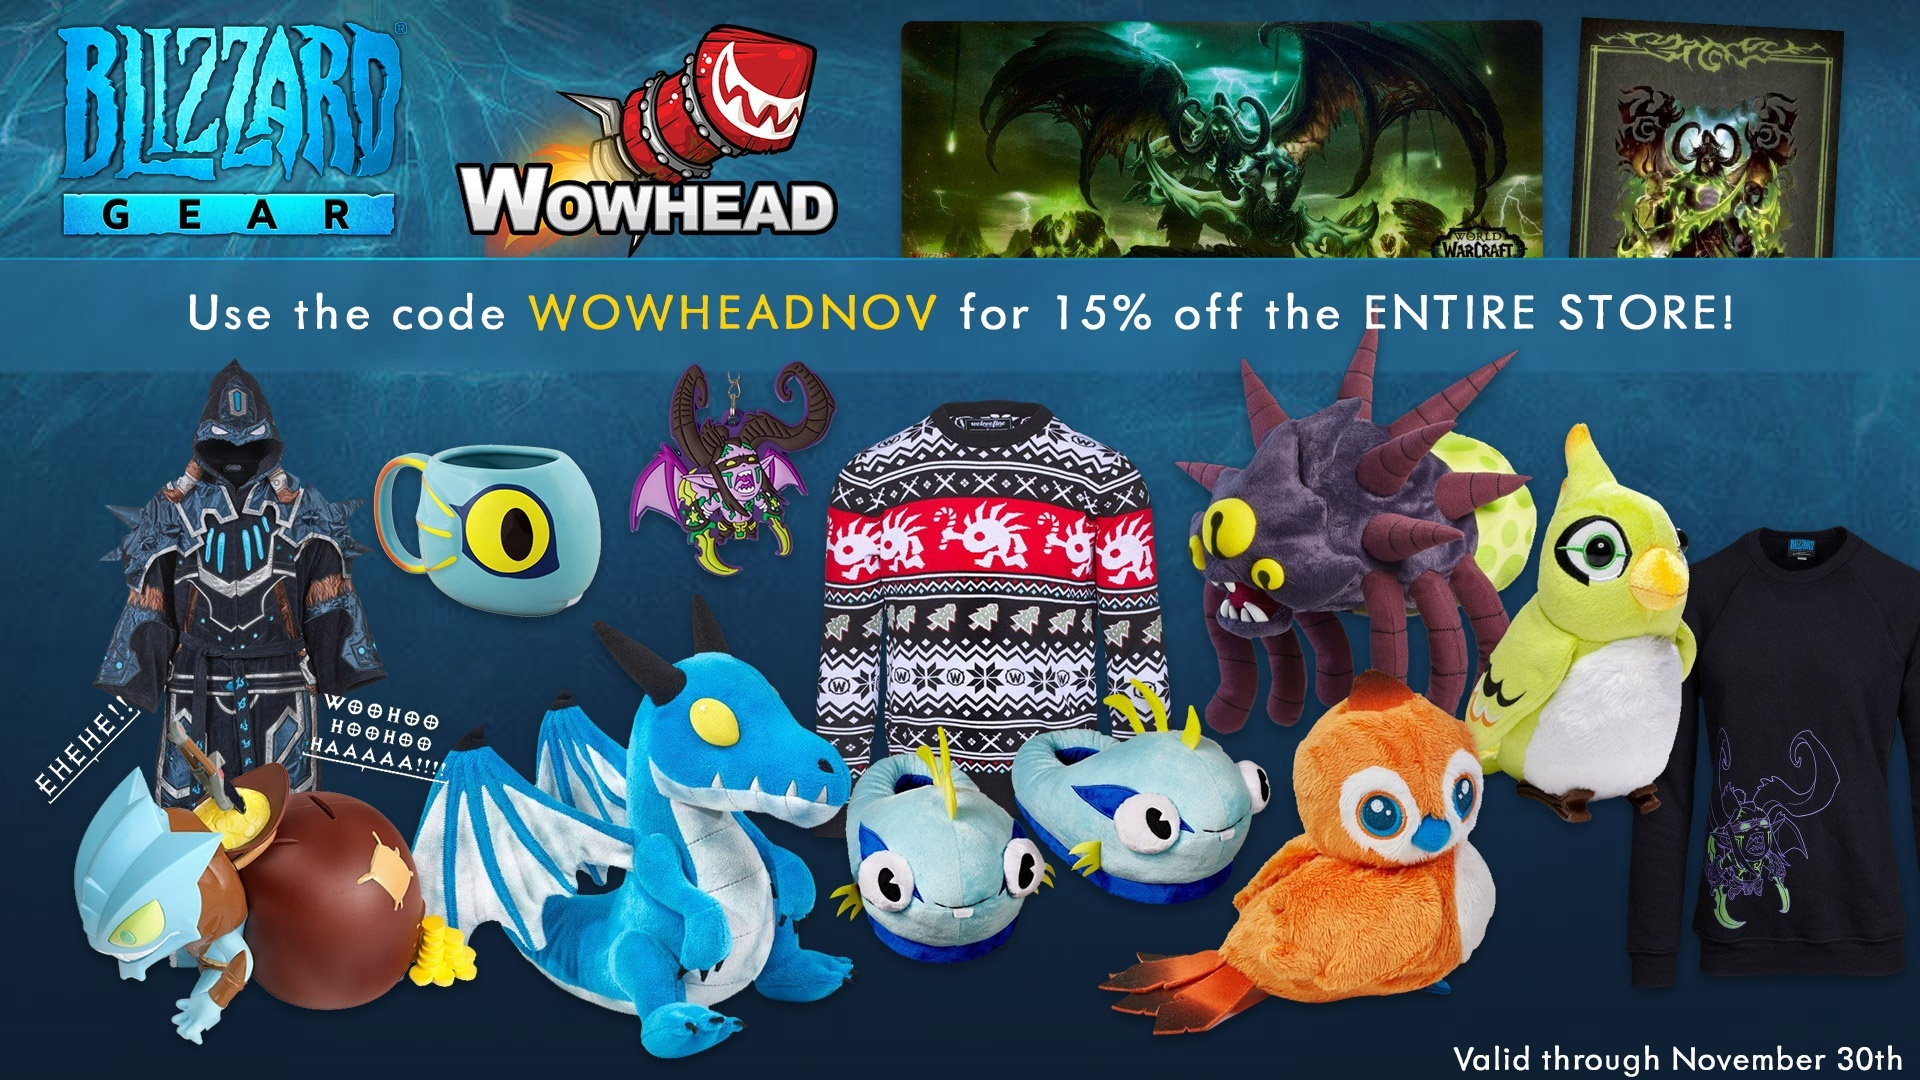 Black Friday Shop Blizzard Gear Shop Black Friday Discounts Now Live Wowhead News